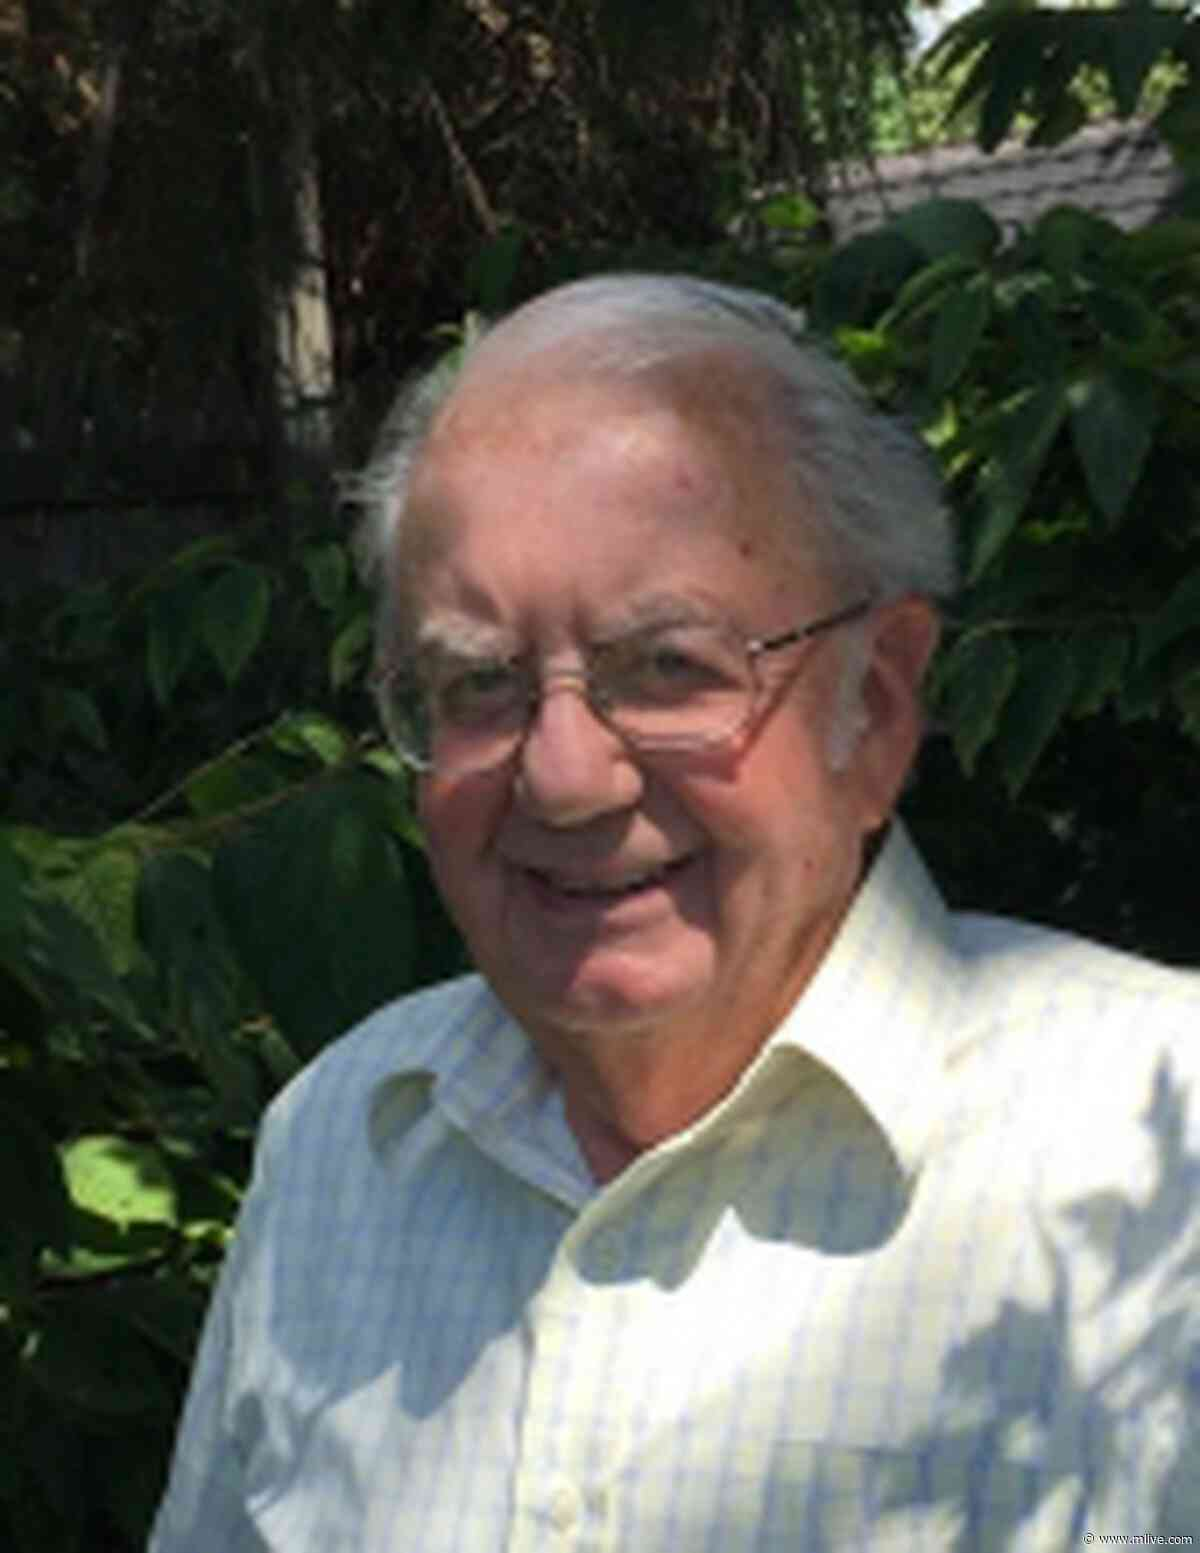 George Heron, former executive director of United Way of Bay County, dies at 81 - mlive.com